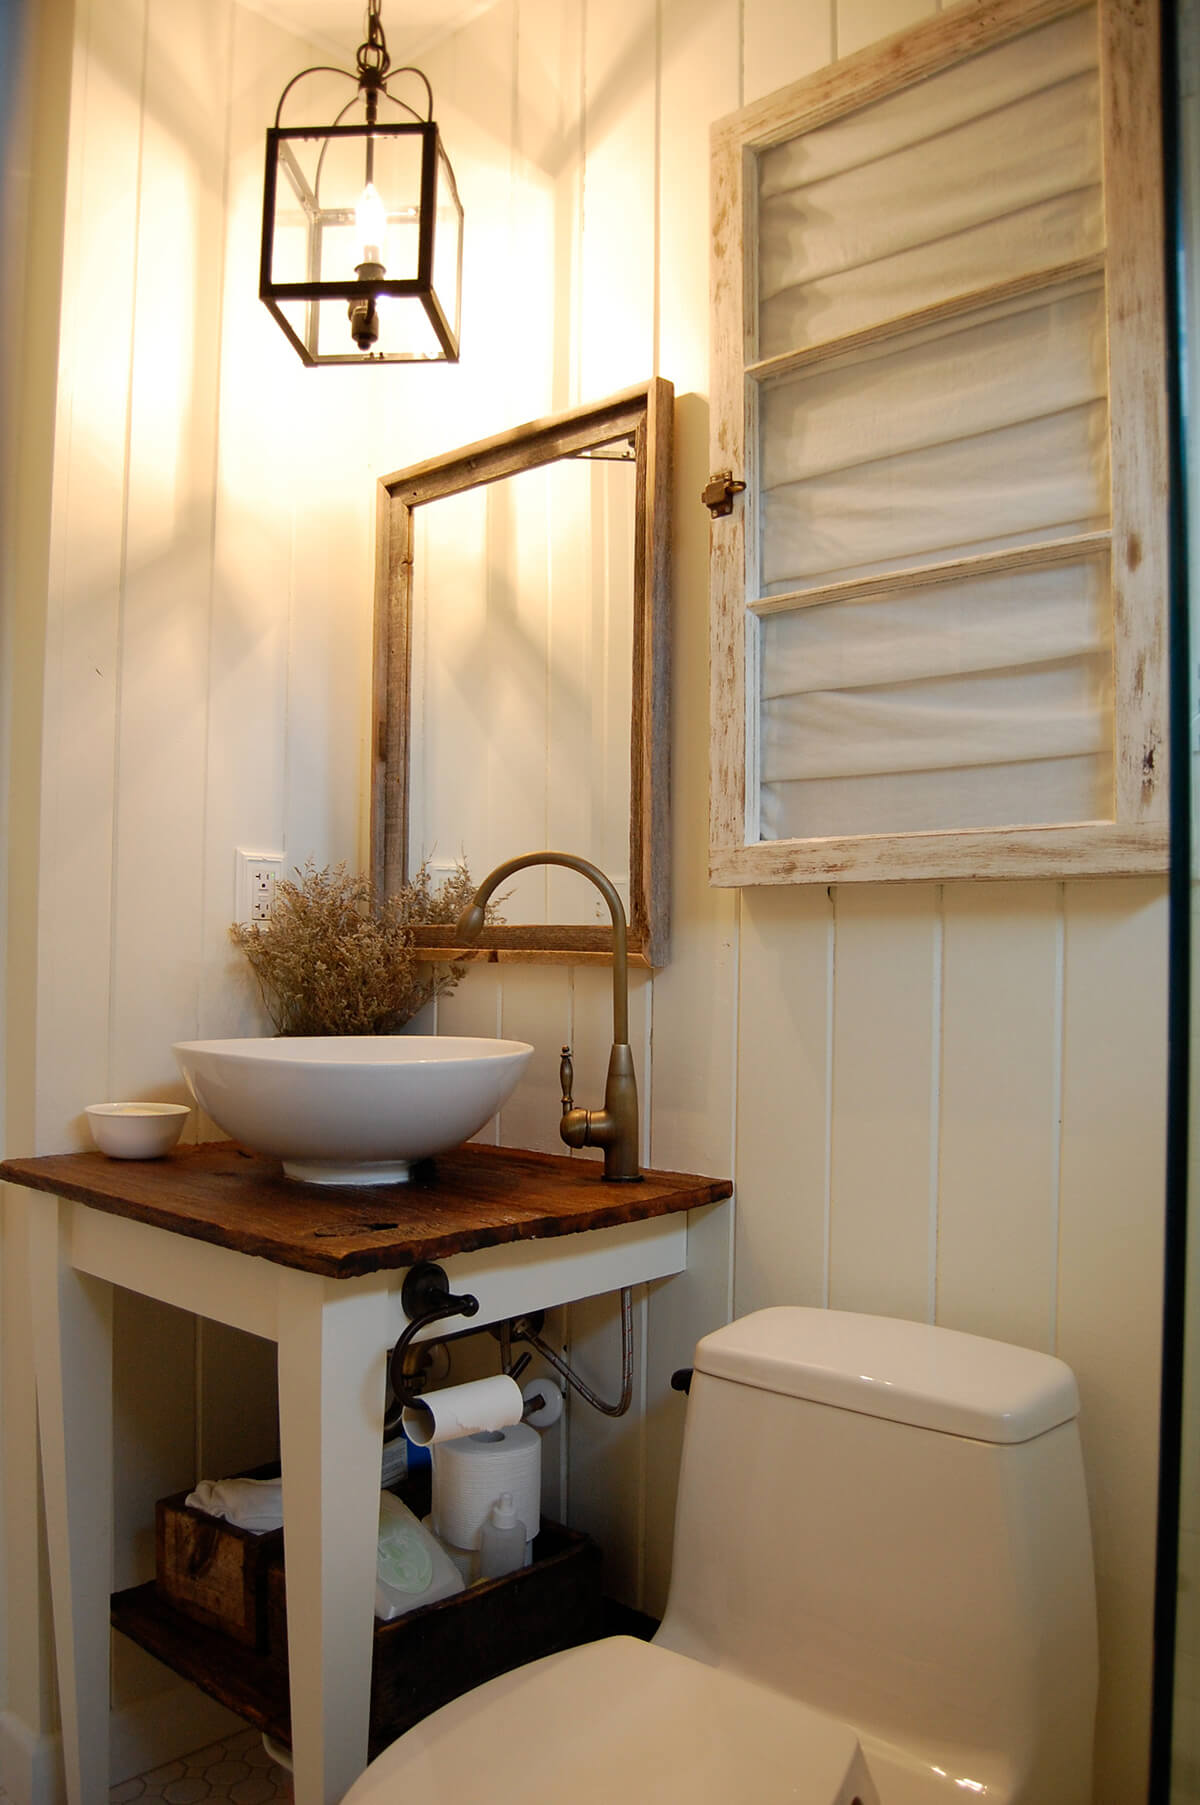 35 Best Rustic Bathroom Vanity Ideas And Designs For 2021